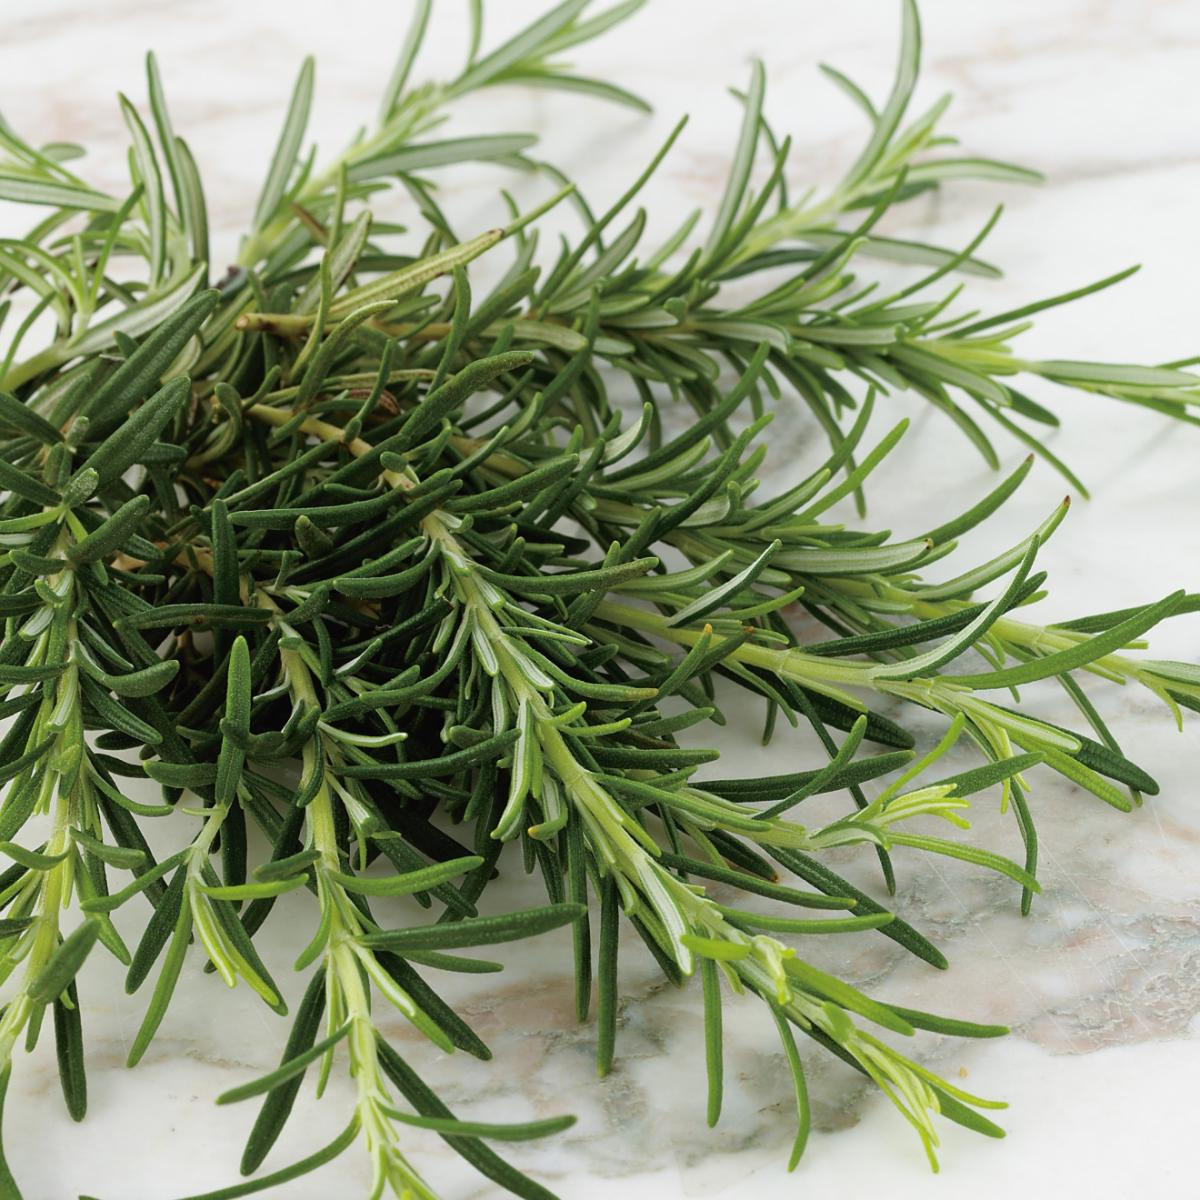 Ingredient chicken rosemary